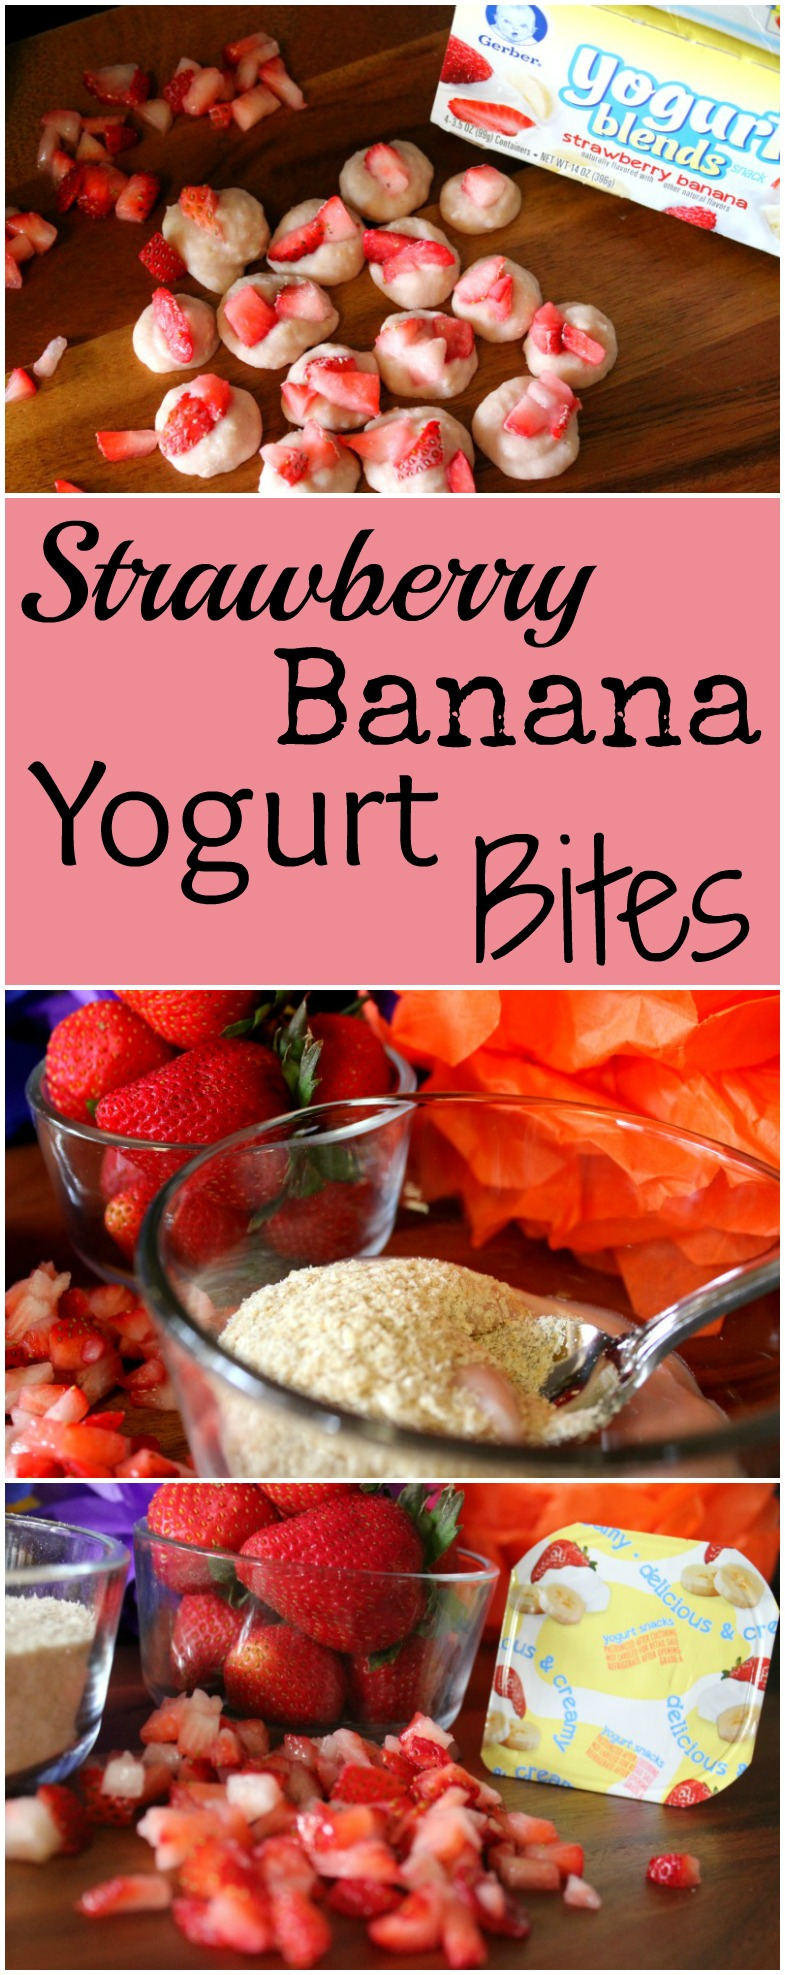 Strawberry Banana Yogurt Bites for Little Hands Made with Gerber Cereal